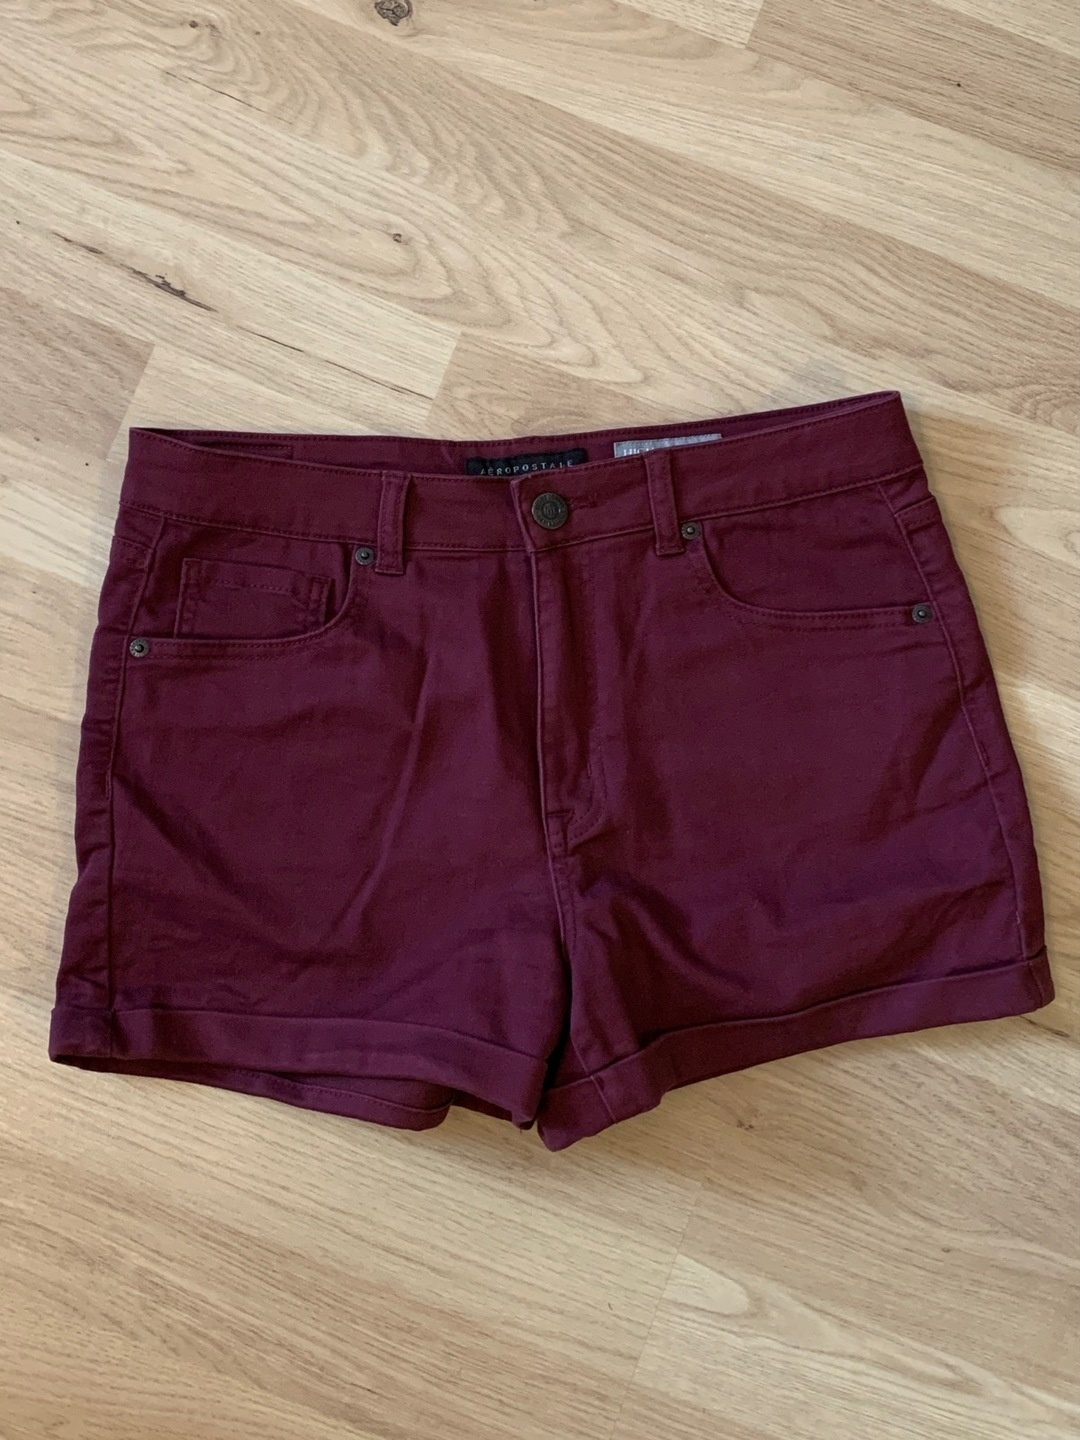 Women's shorts - AEROPOSTALE photo 1